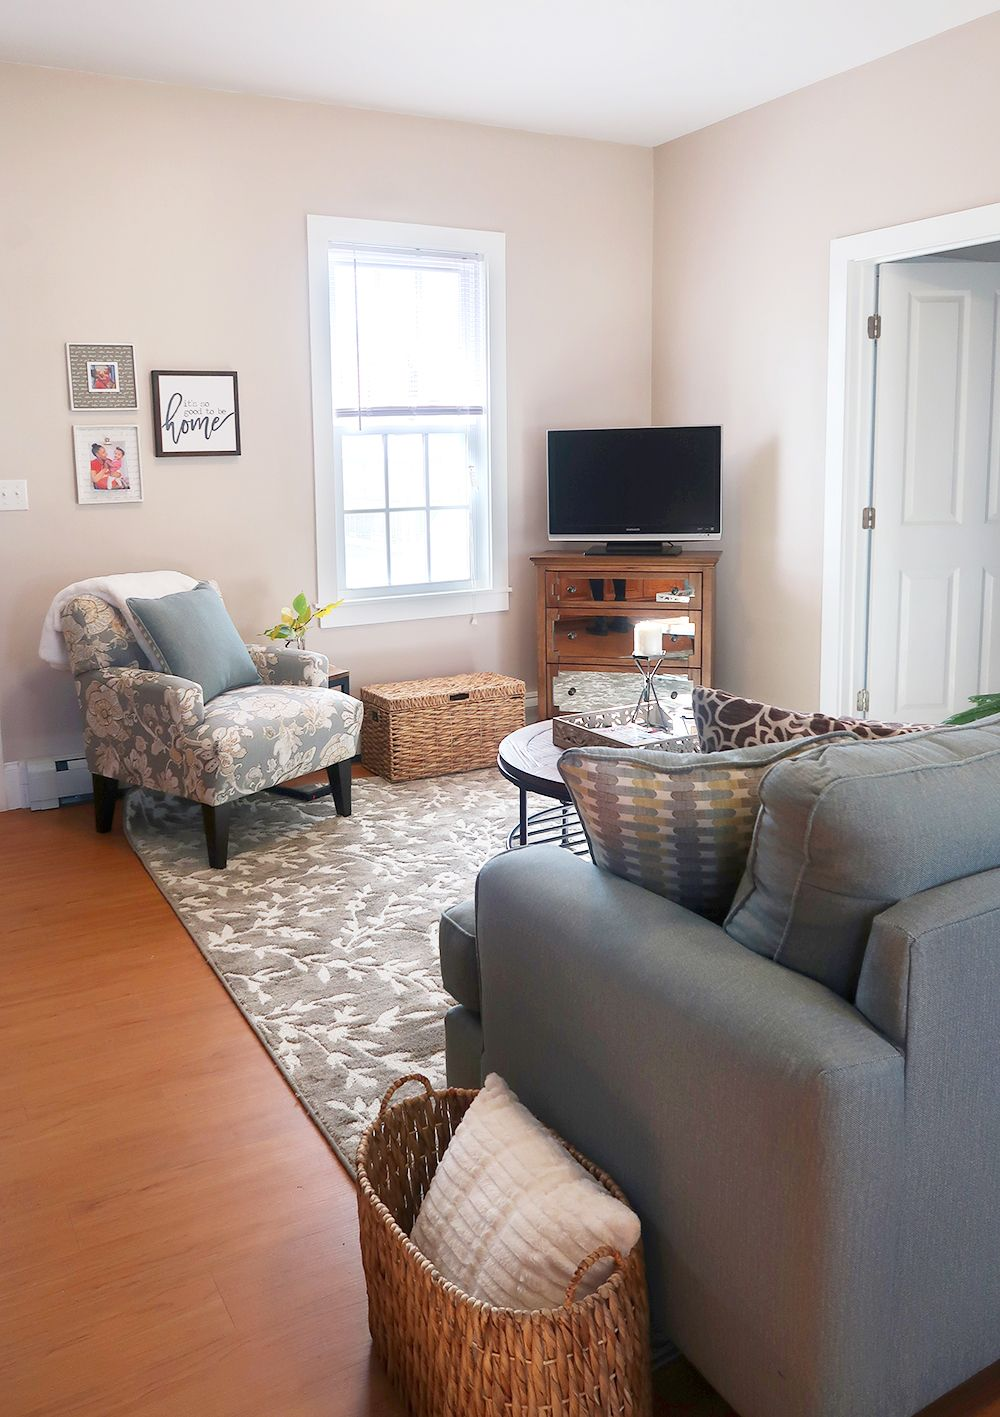 How to decorate and layout furniture in a small open concept ...